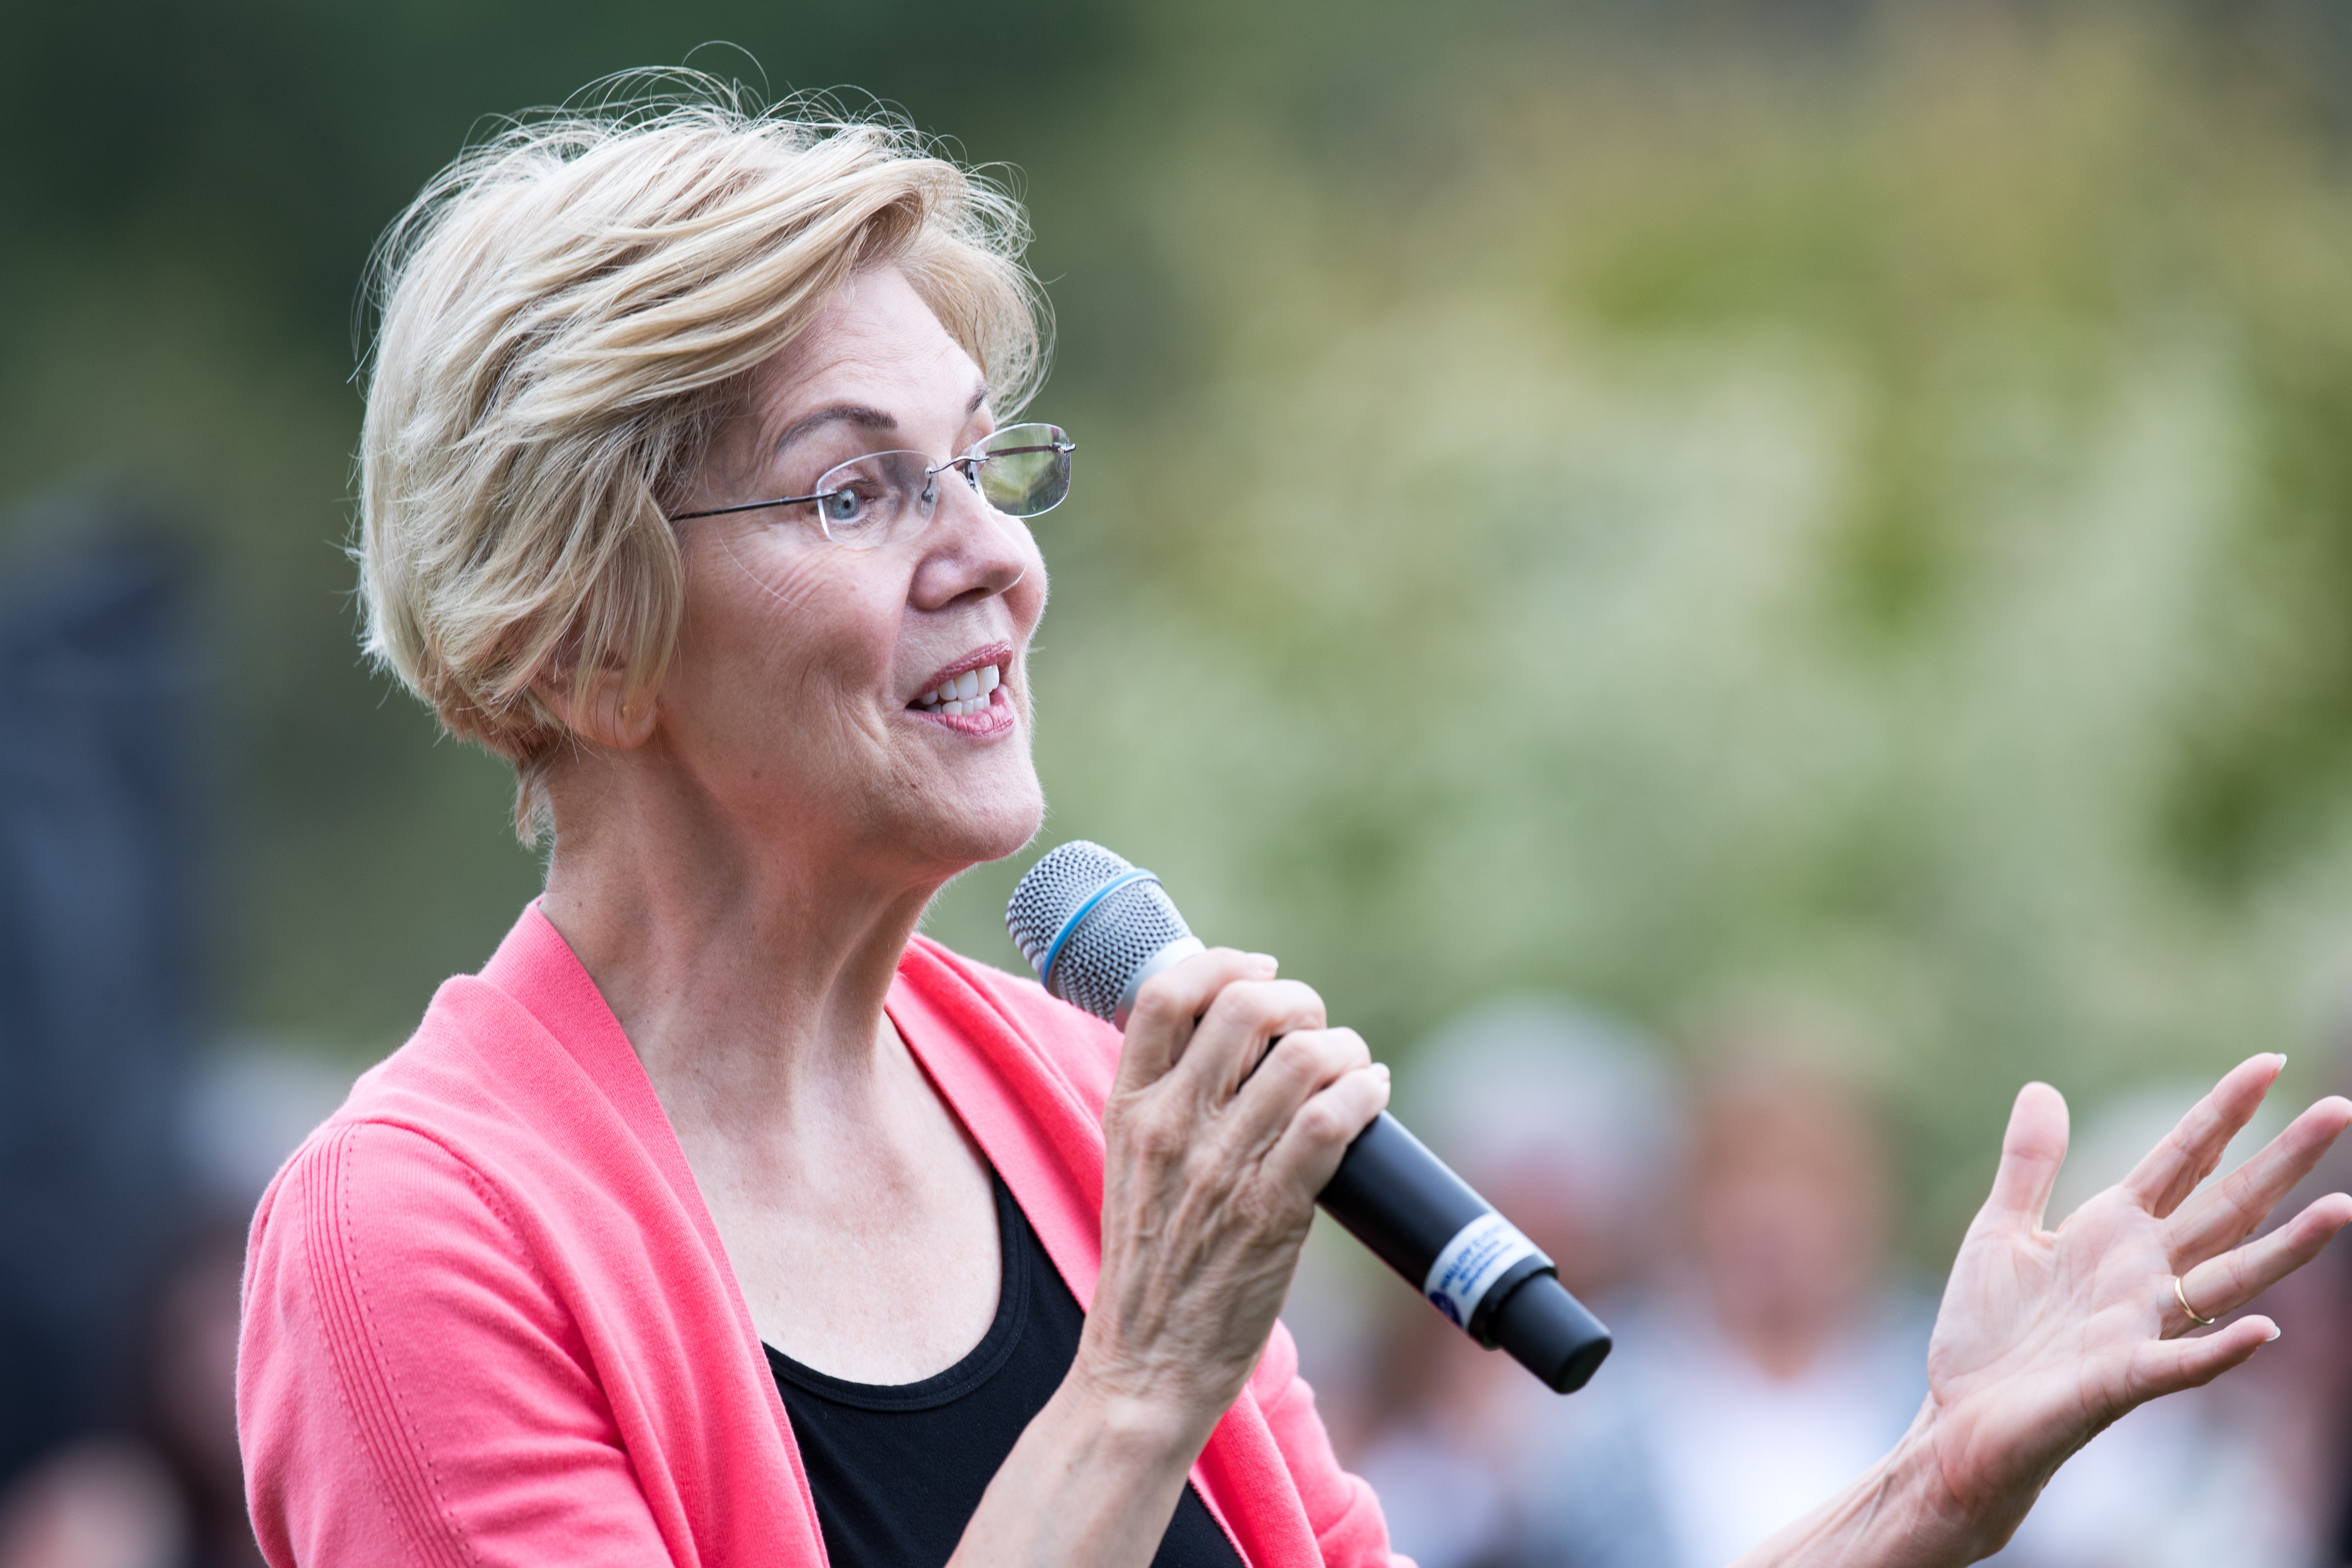 Crowd Size Numbers for Elizabeth Warren Remain Uncorroborated but Signs Point to a Campaign on the Rise